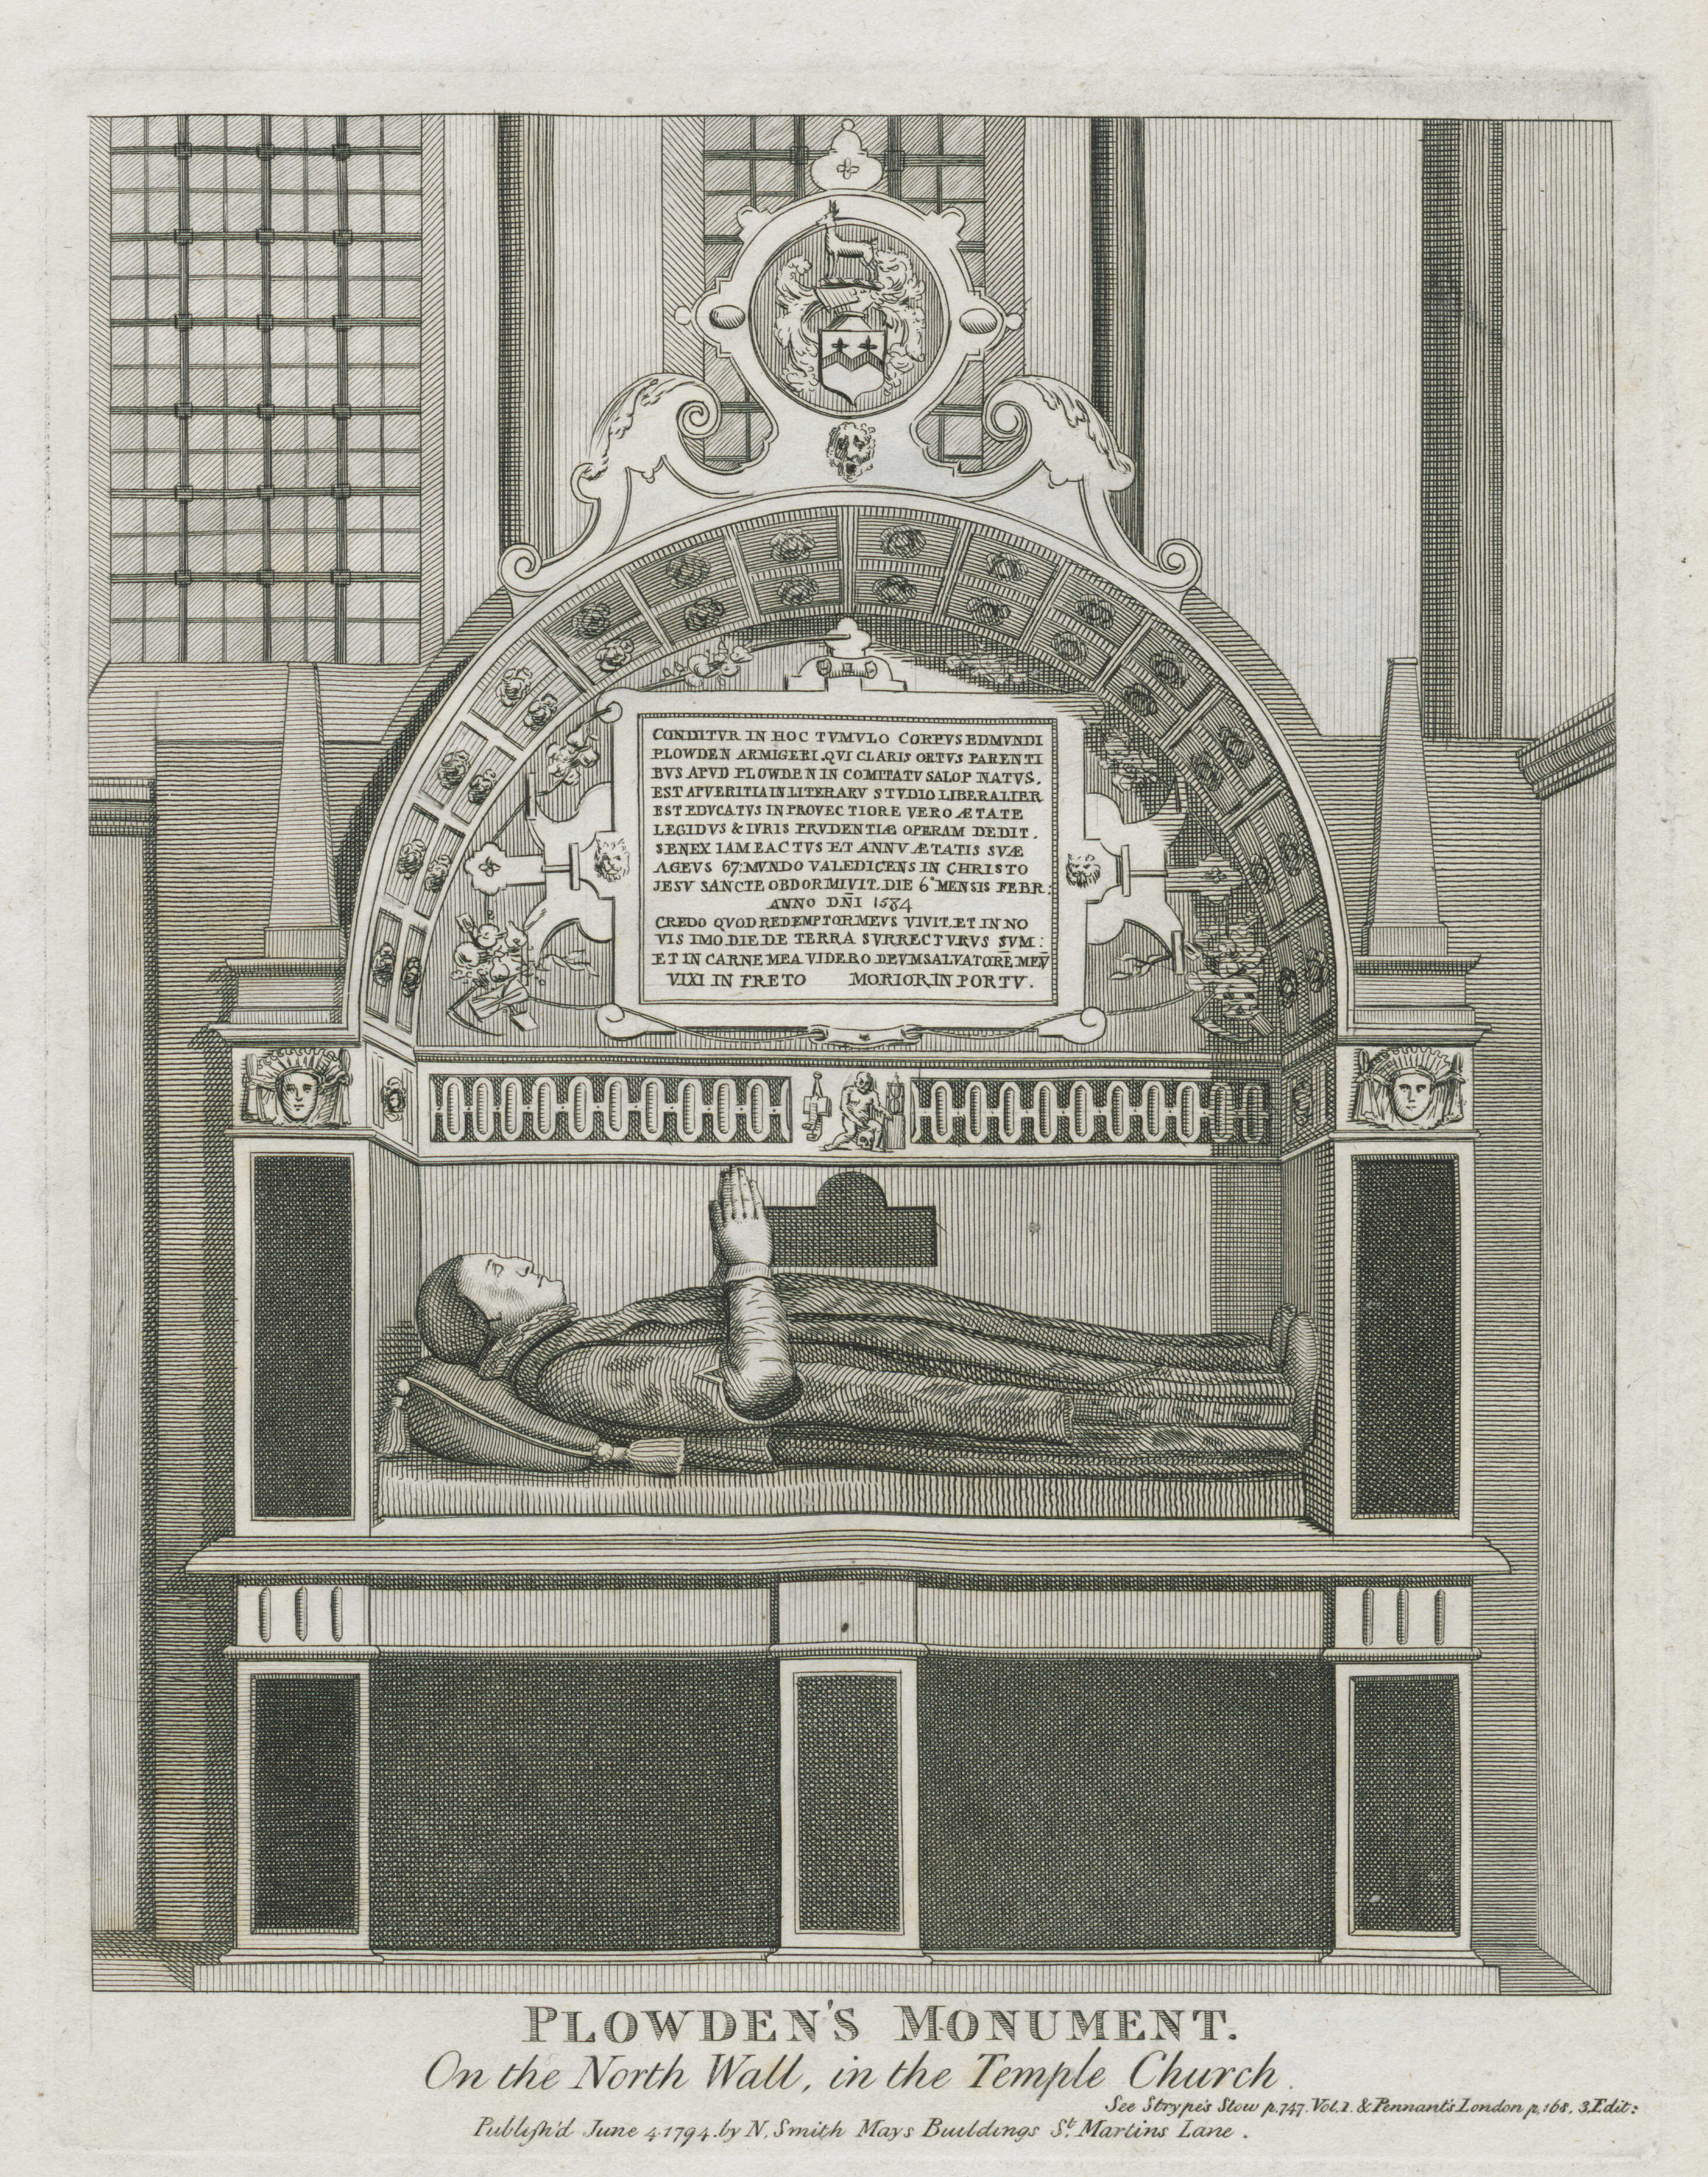 56-plowdens-monument-on-the-north-wall-in-the-temple-church